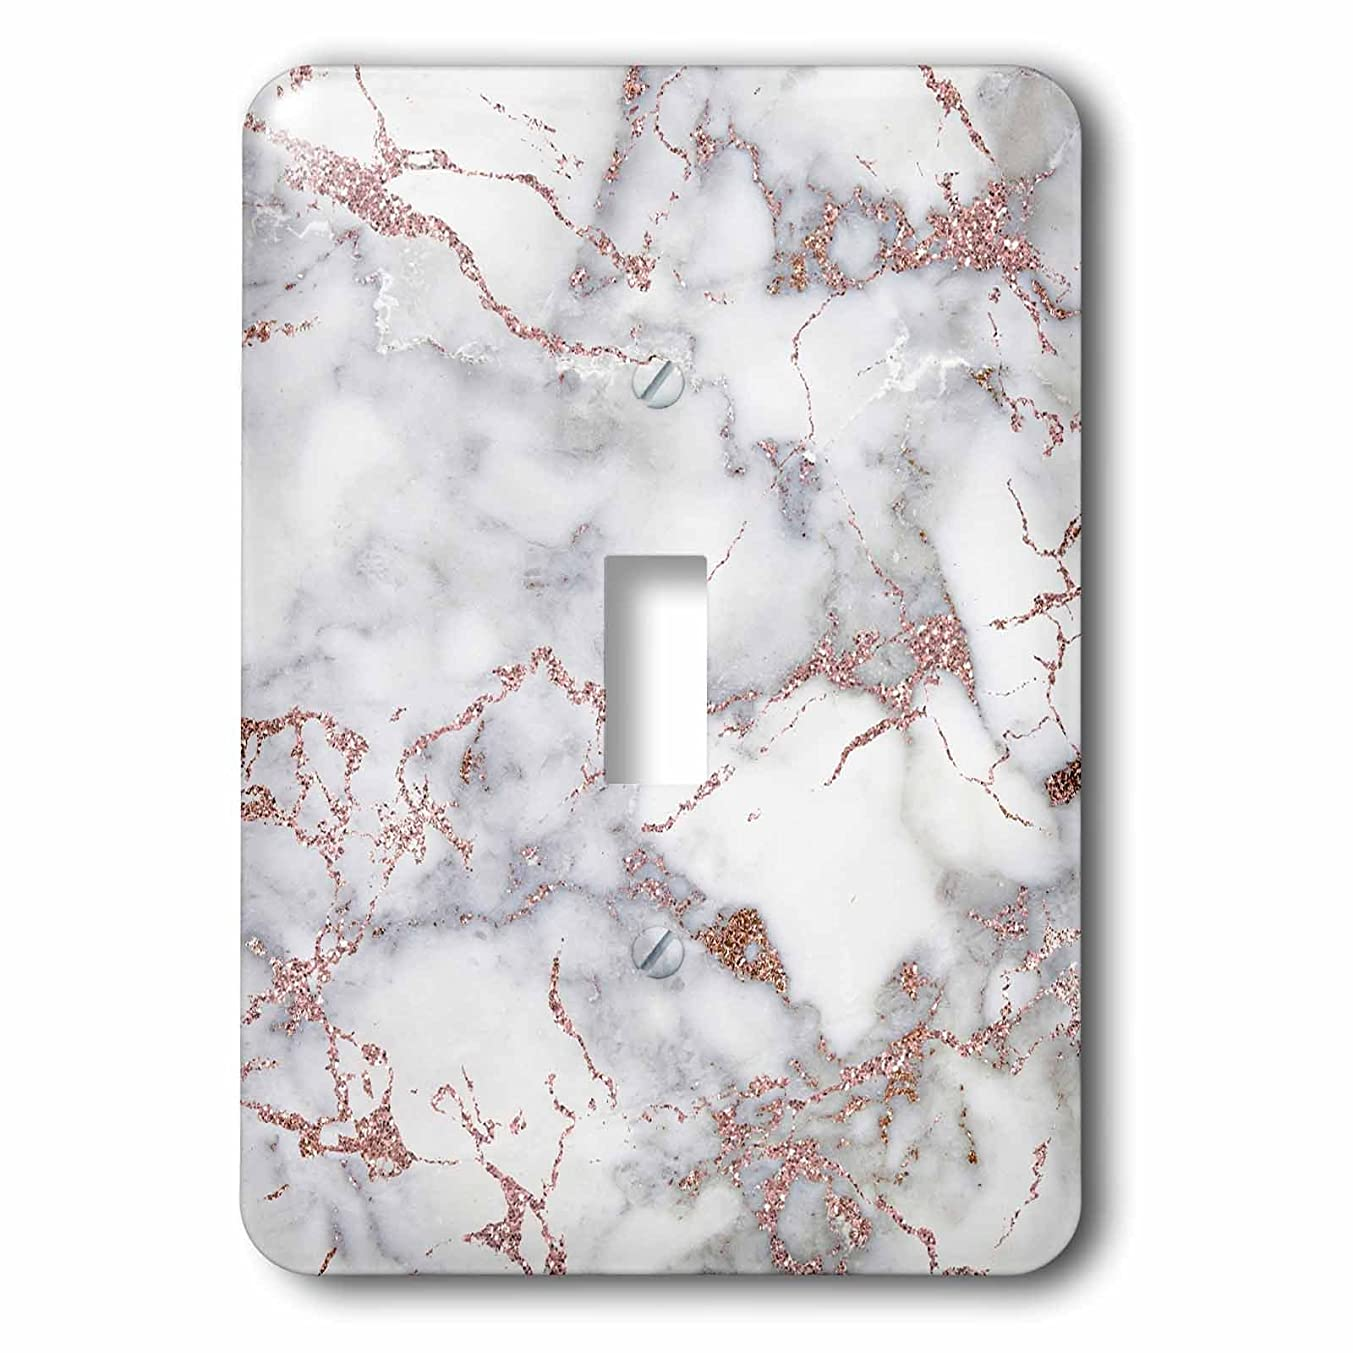 3dRose lsp_275086_1 Image of Shiny Luxury Trendy Rose Gold Glitter Marble Agate Quartz Toggle Switch, Mixed